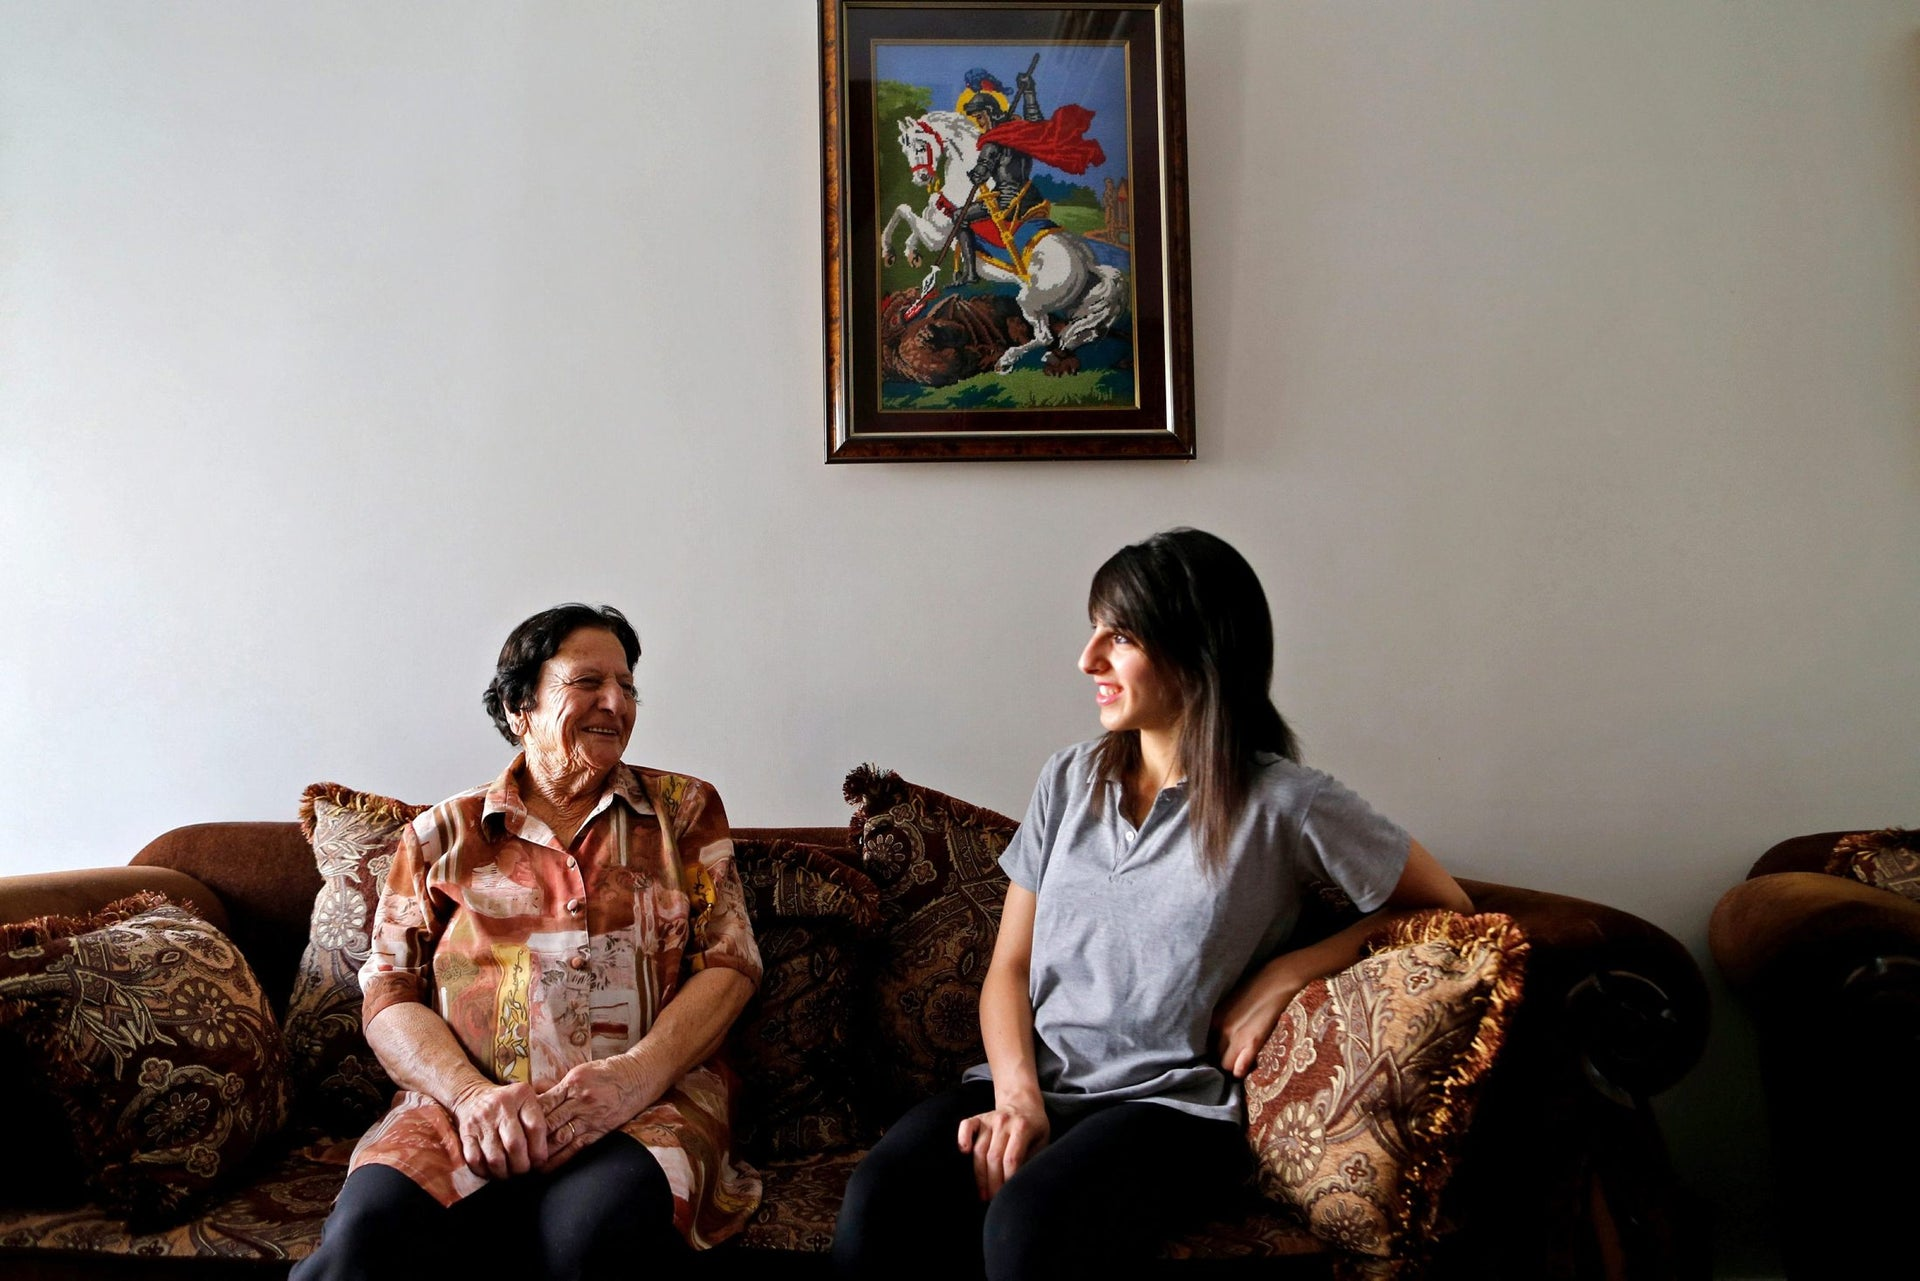 Palestinian swimmer Mary Al-Atrash (R), 22, who will represent Palestine at the 2016 Rio Olympics, sits with her grandmother in Beit Sahour, near the West Bank town of Bethlehem, June 27, 2016.